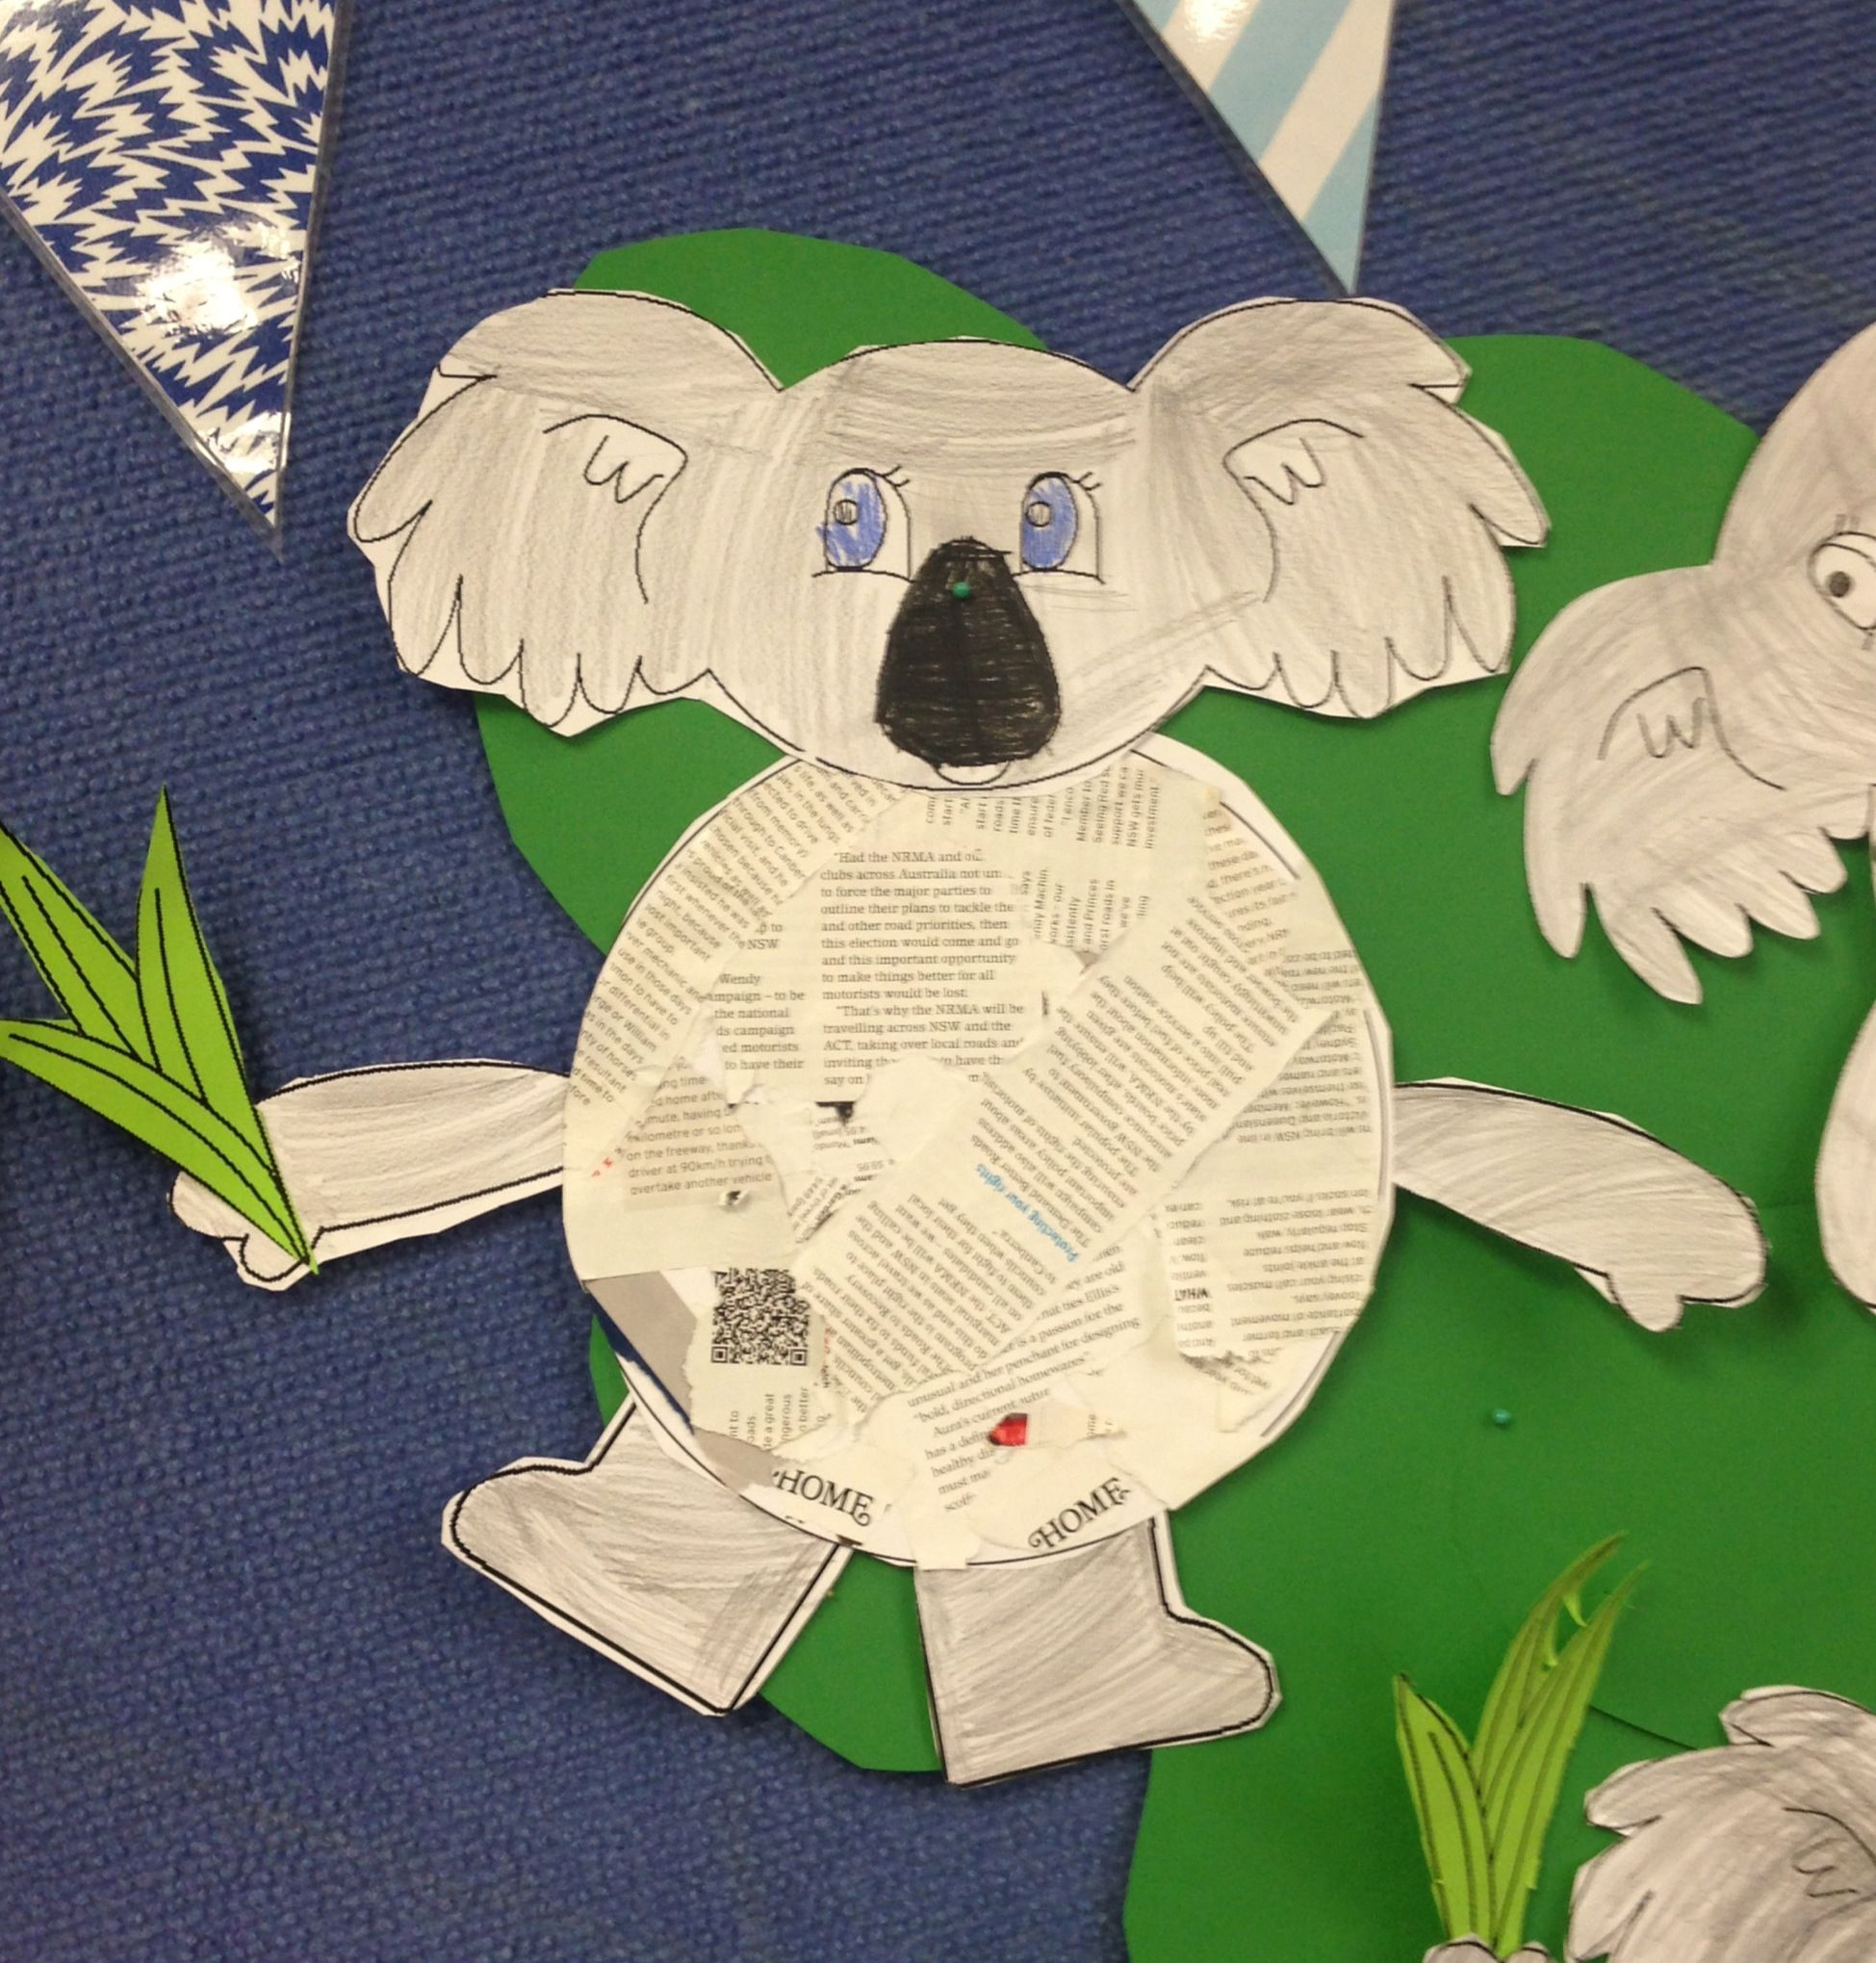 koala lou activities google search book koala lou by mem fox koala lou mem fox newspaper collage craft activity